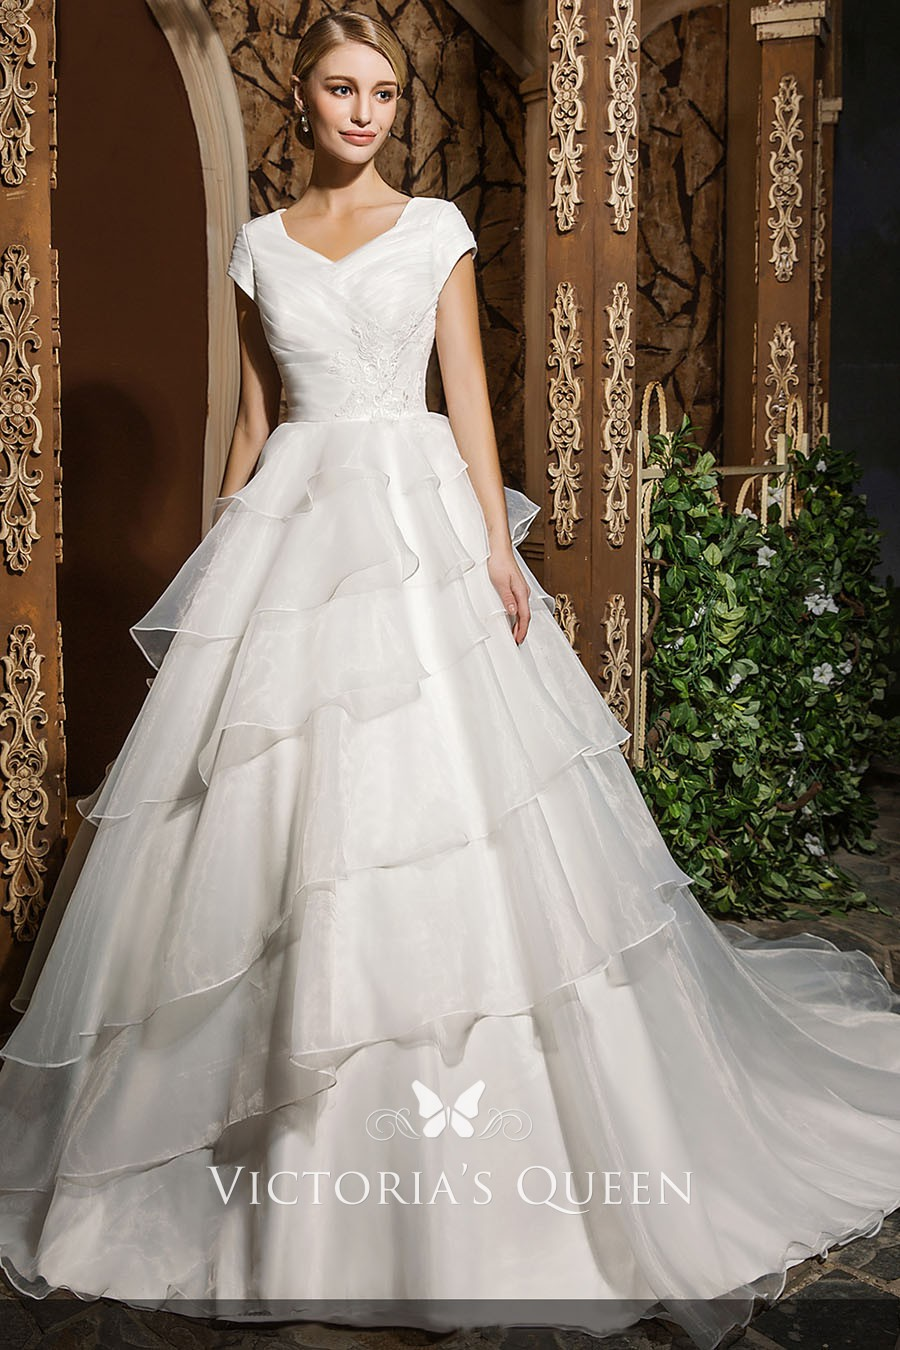 Tiered Organza Short Sleeves Princess Wedding Ball Gown Vq